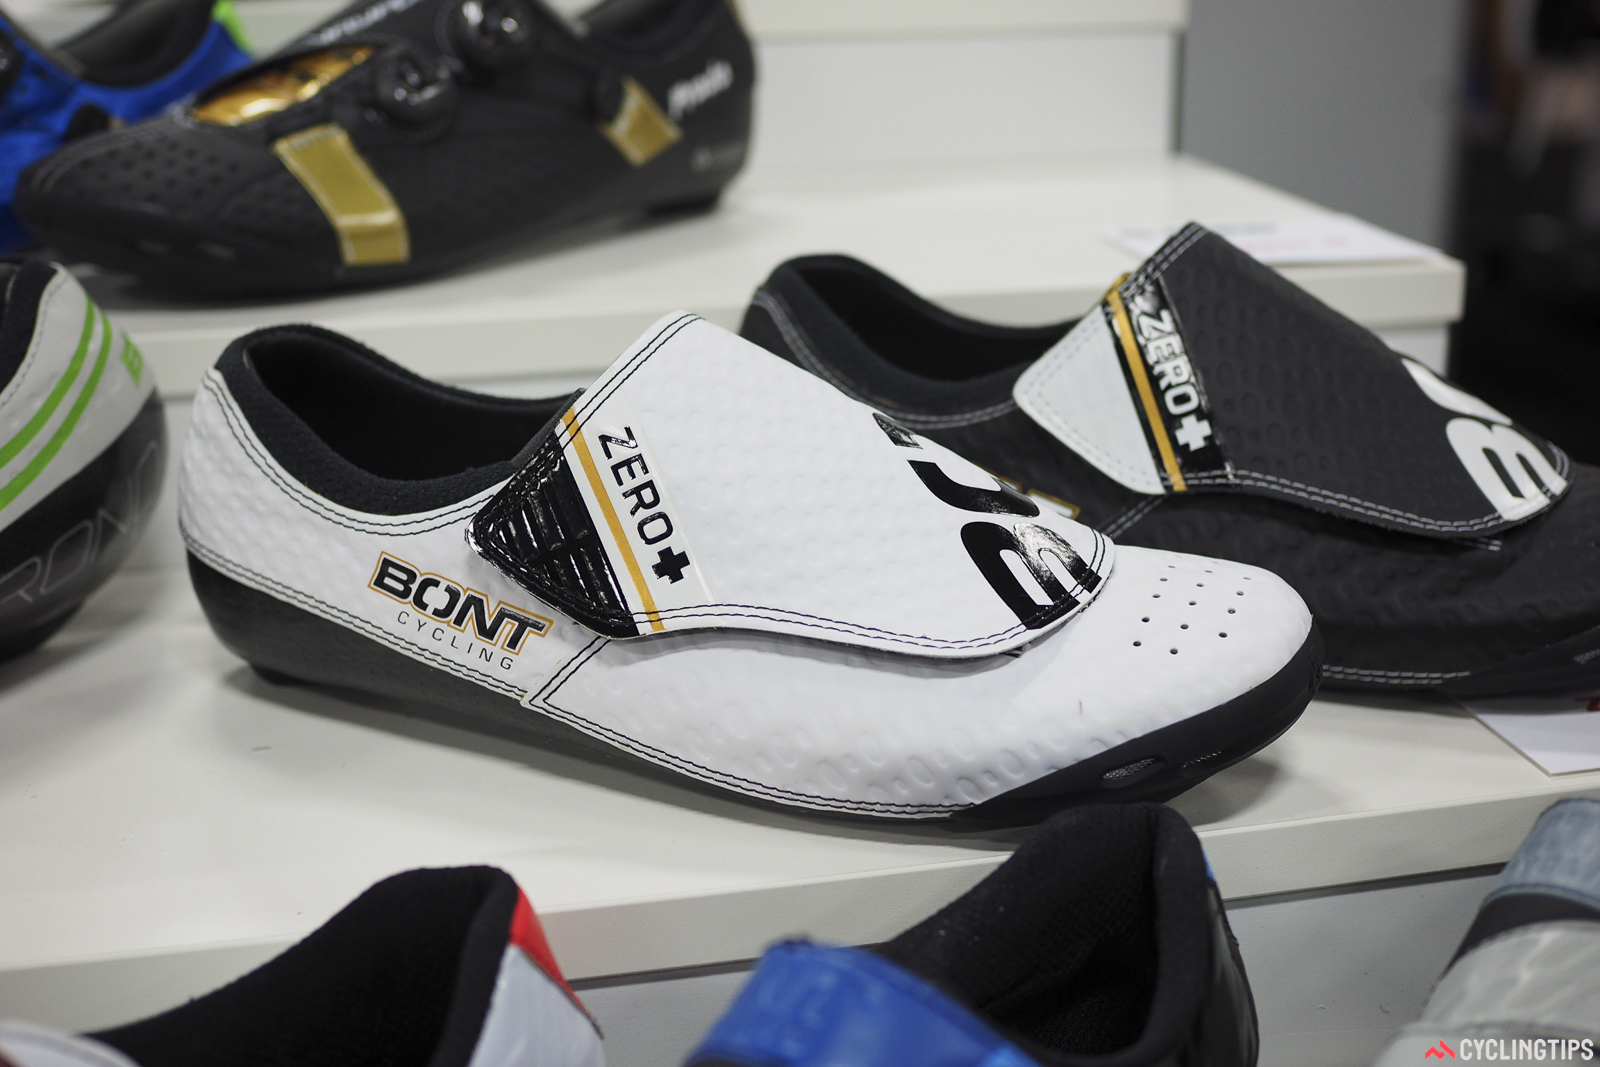 The Bont Zero+ gets a makeover this year, with a more competition-oriented last borrowed from the Vaypor S. The cover and dimpled surface are intended to reduce aerodynamic drag. Retail price is US$439.